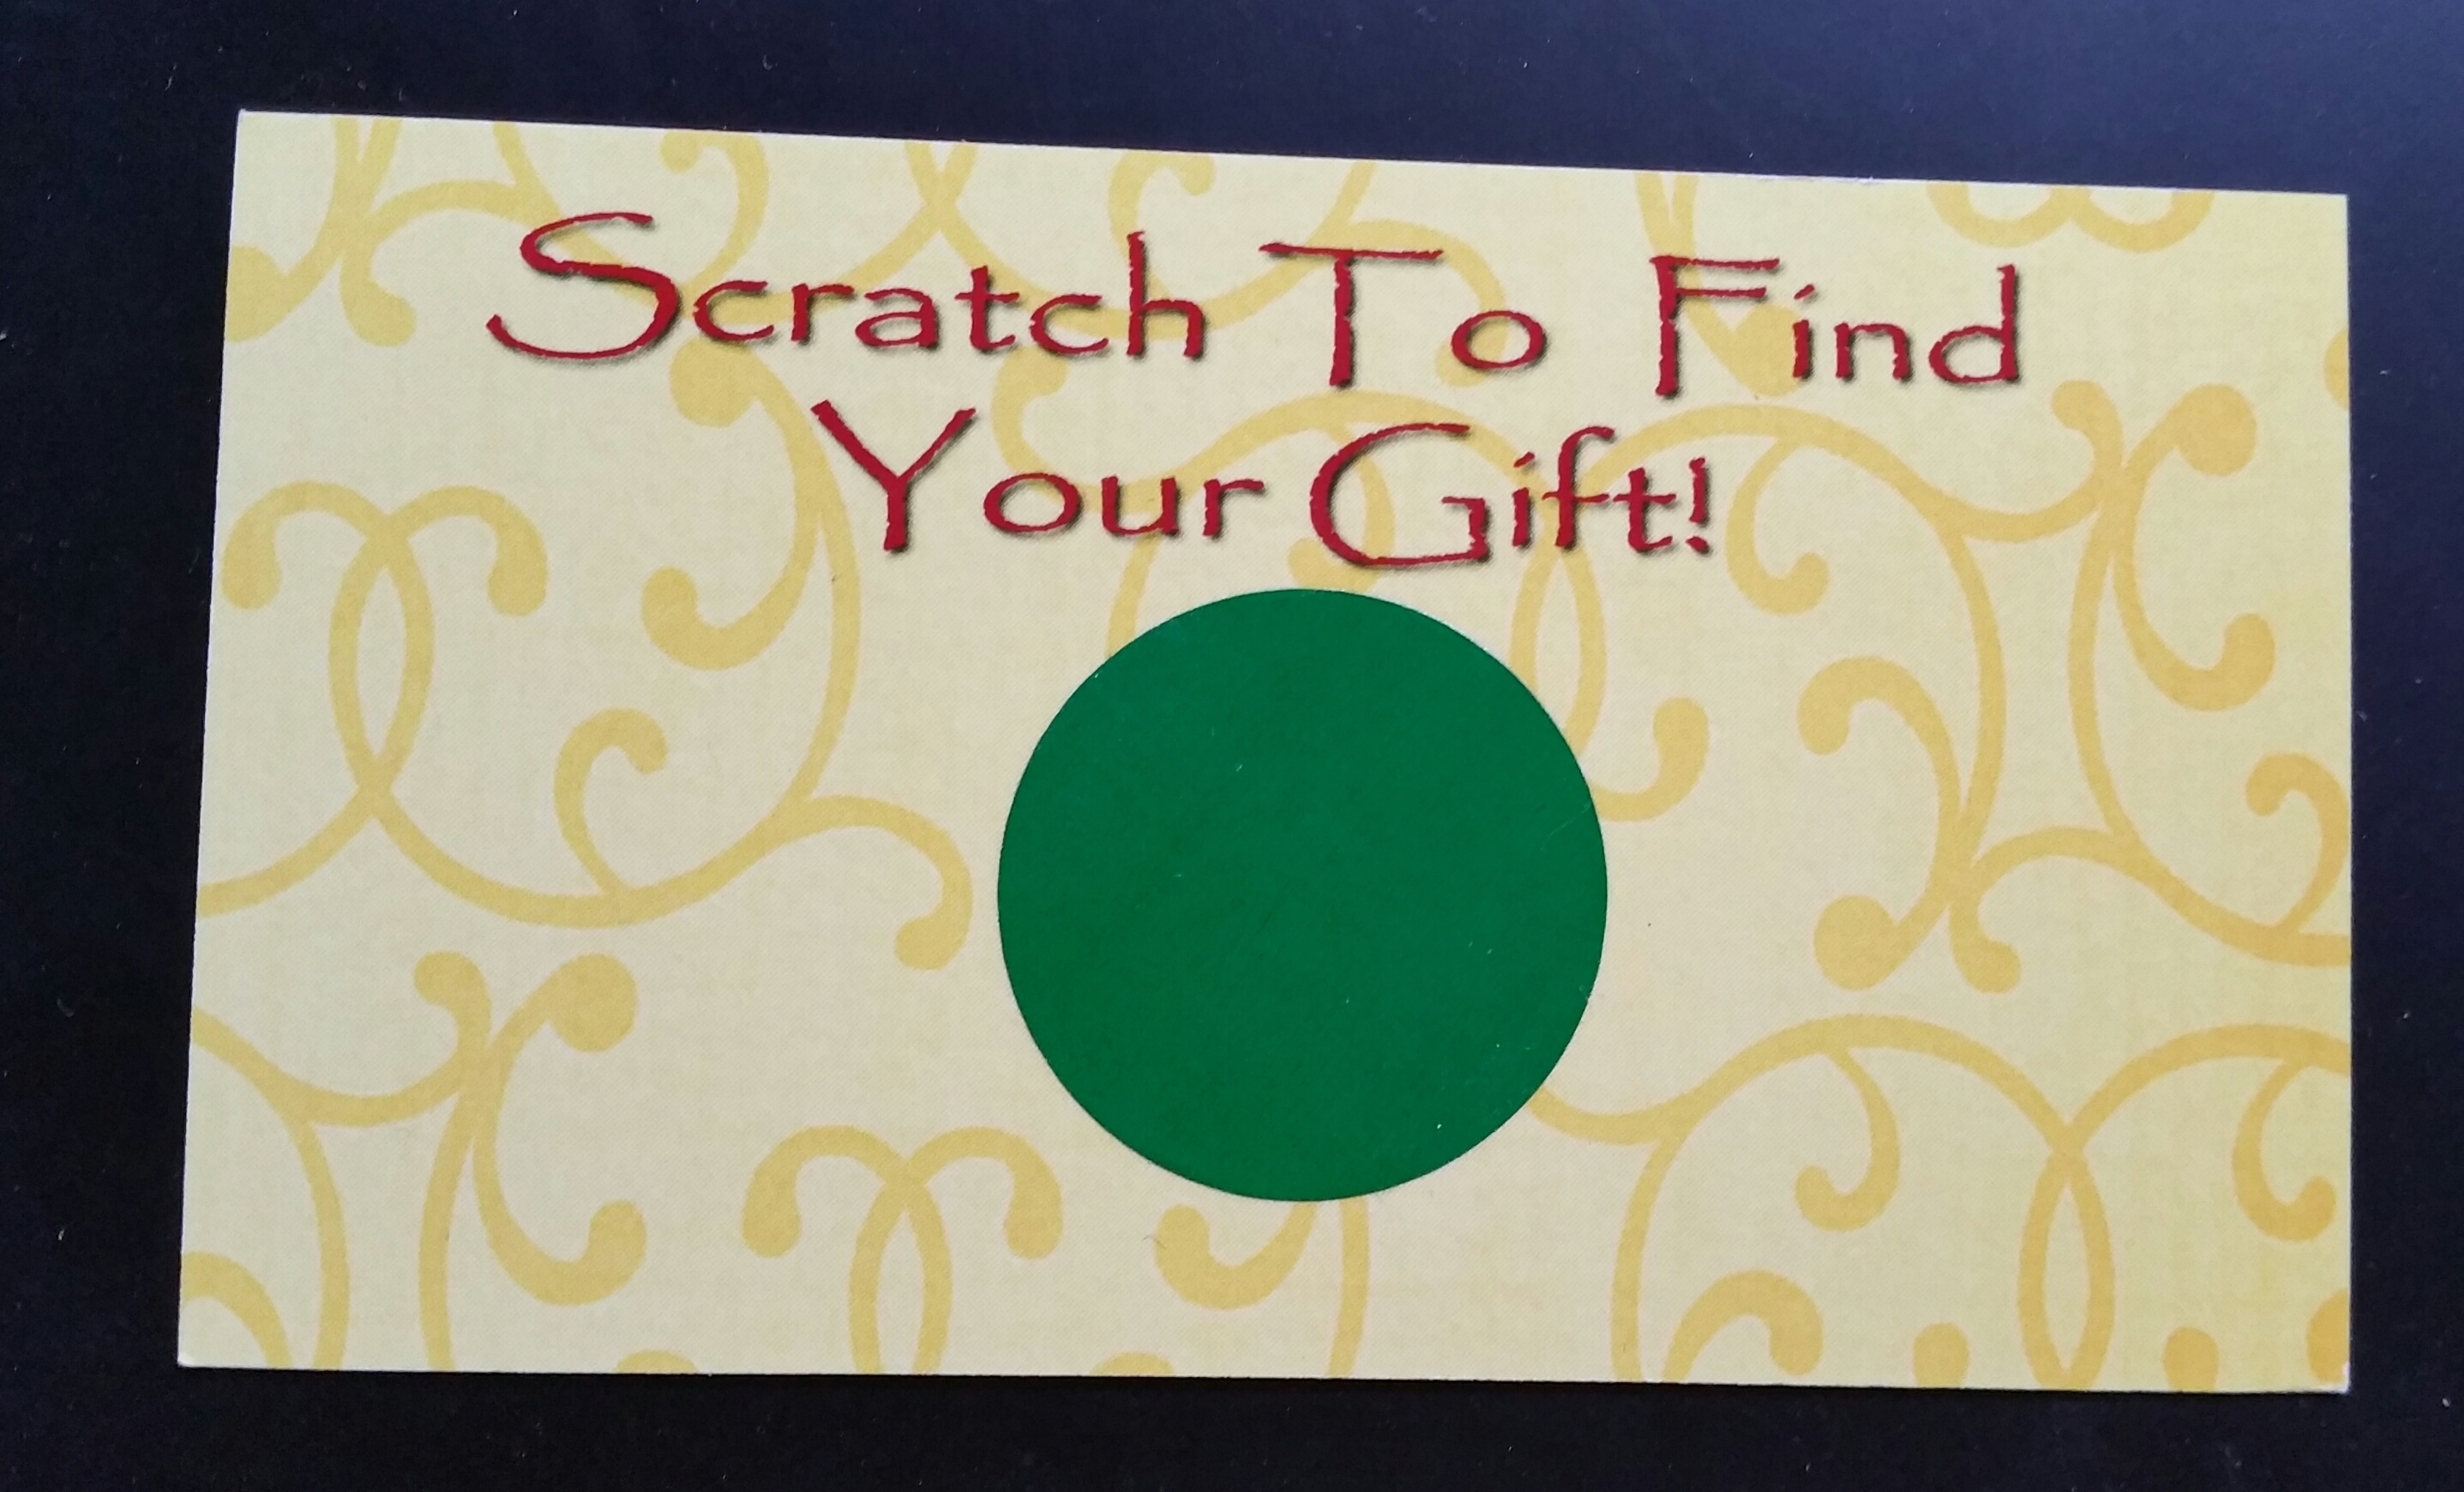 Scratch To find your gift